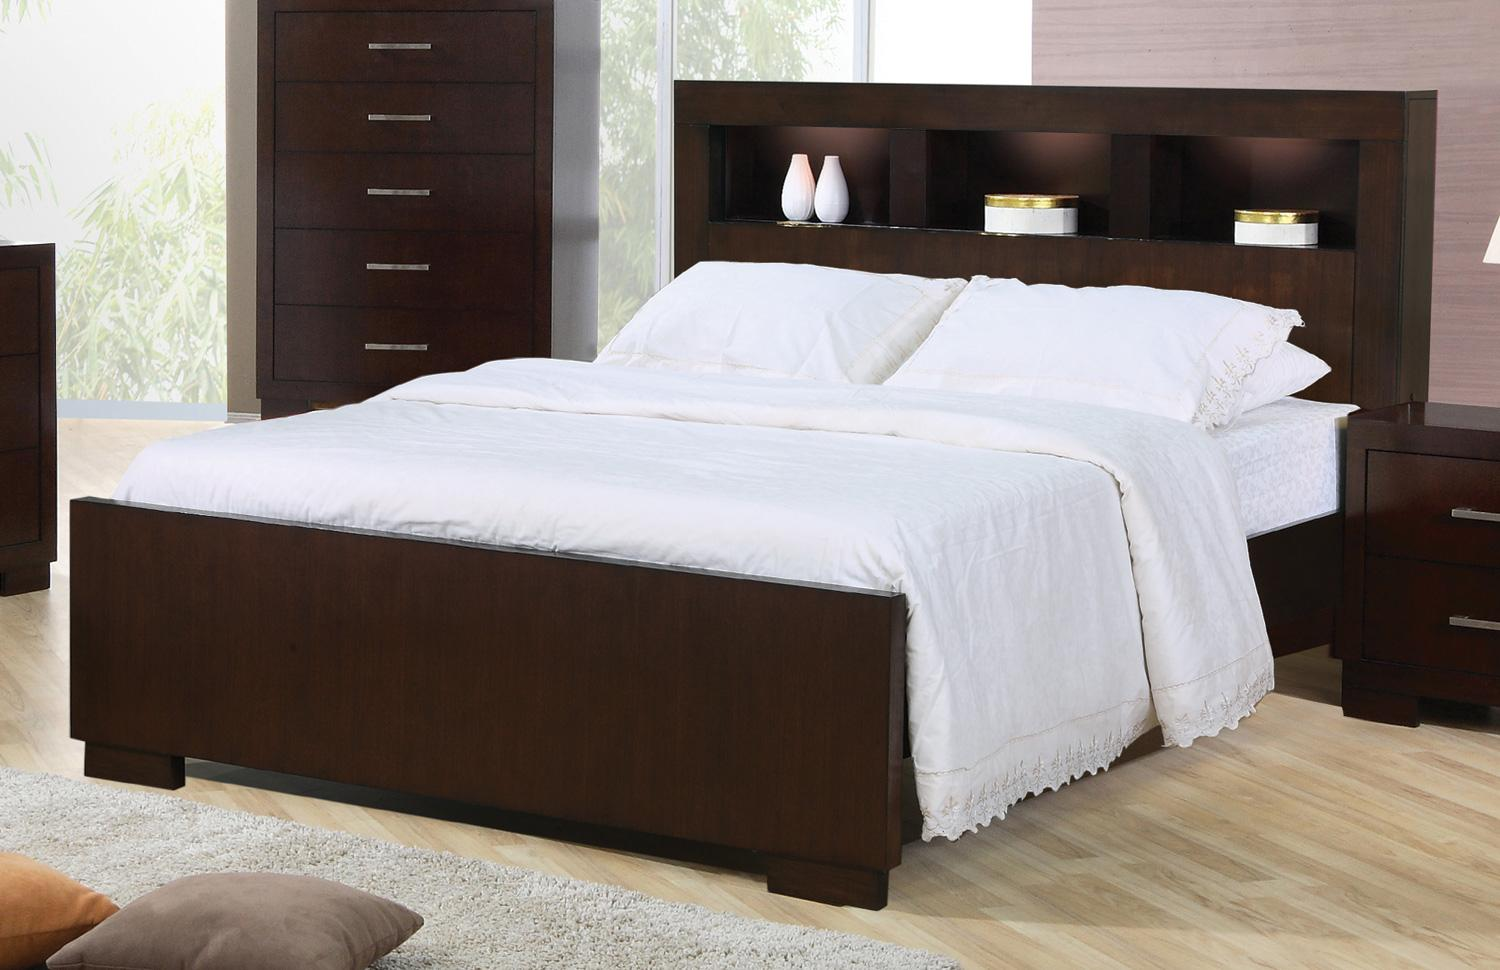 Jessica King Contemporary Bed With Storage Headboard And Built In Lighting Sadler S Home Furnishings Bookcase Beds